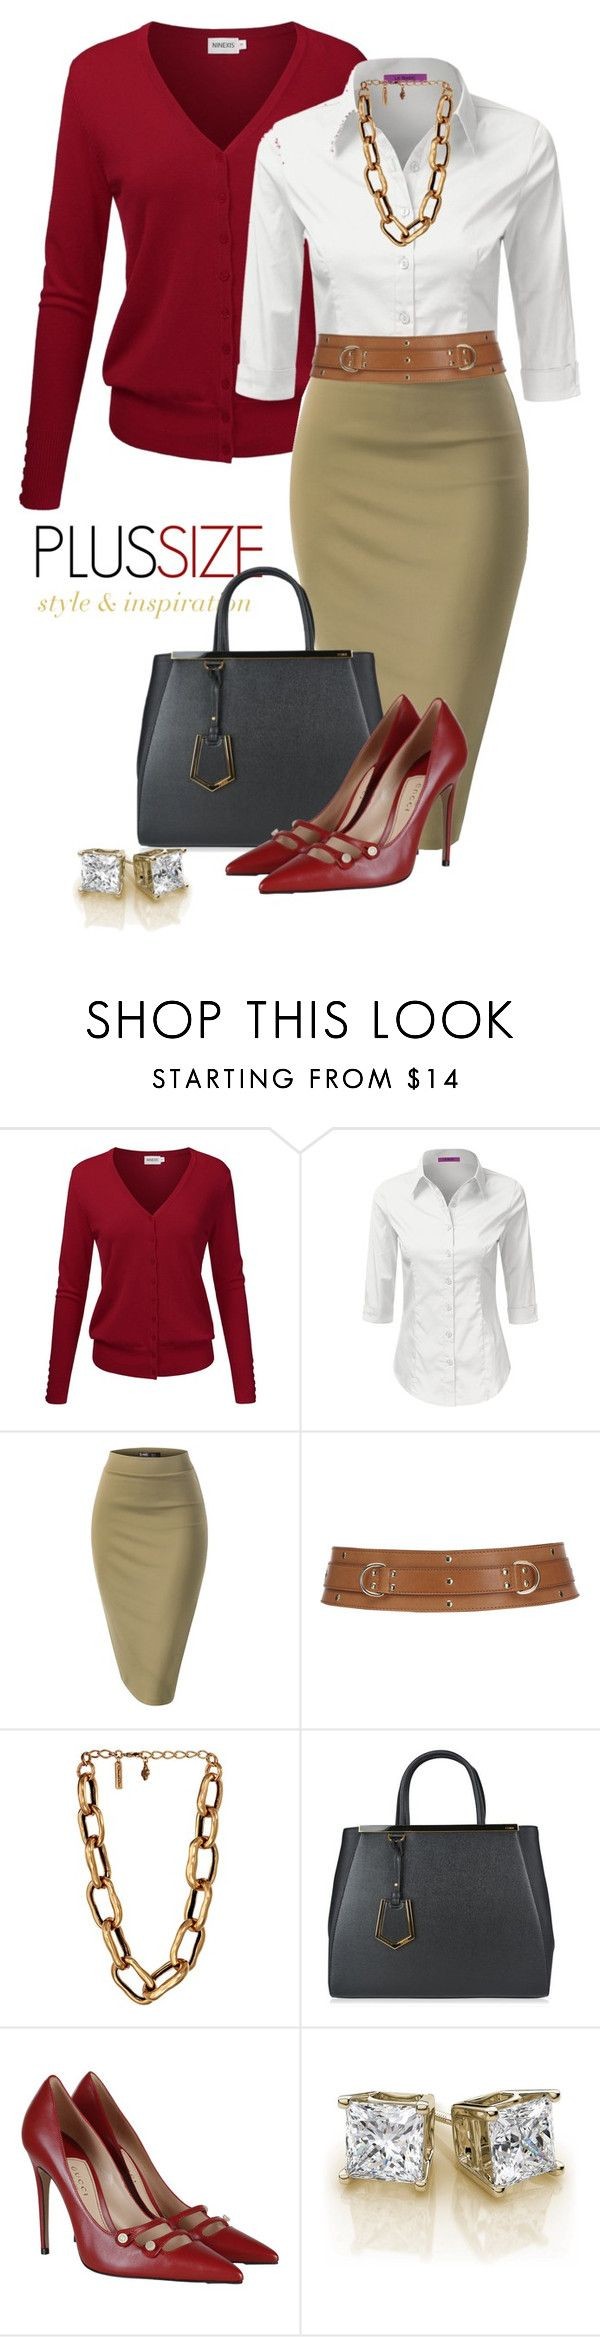 """""""Work Outfit -- #Plus Size"""" by kimberlyn303 on Polyvore featuring Belstaff, Oscar de la Renta, Fendi and Gucci"""